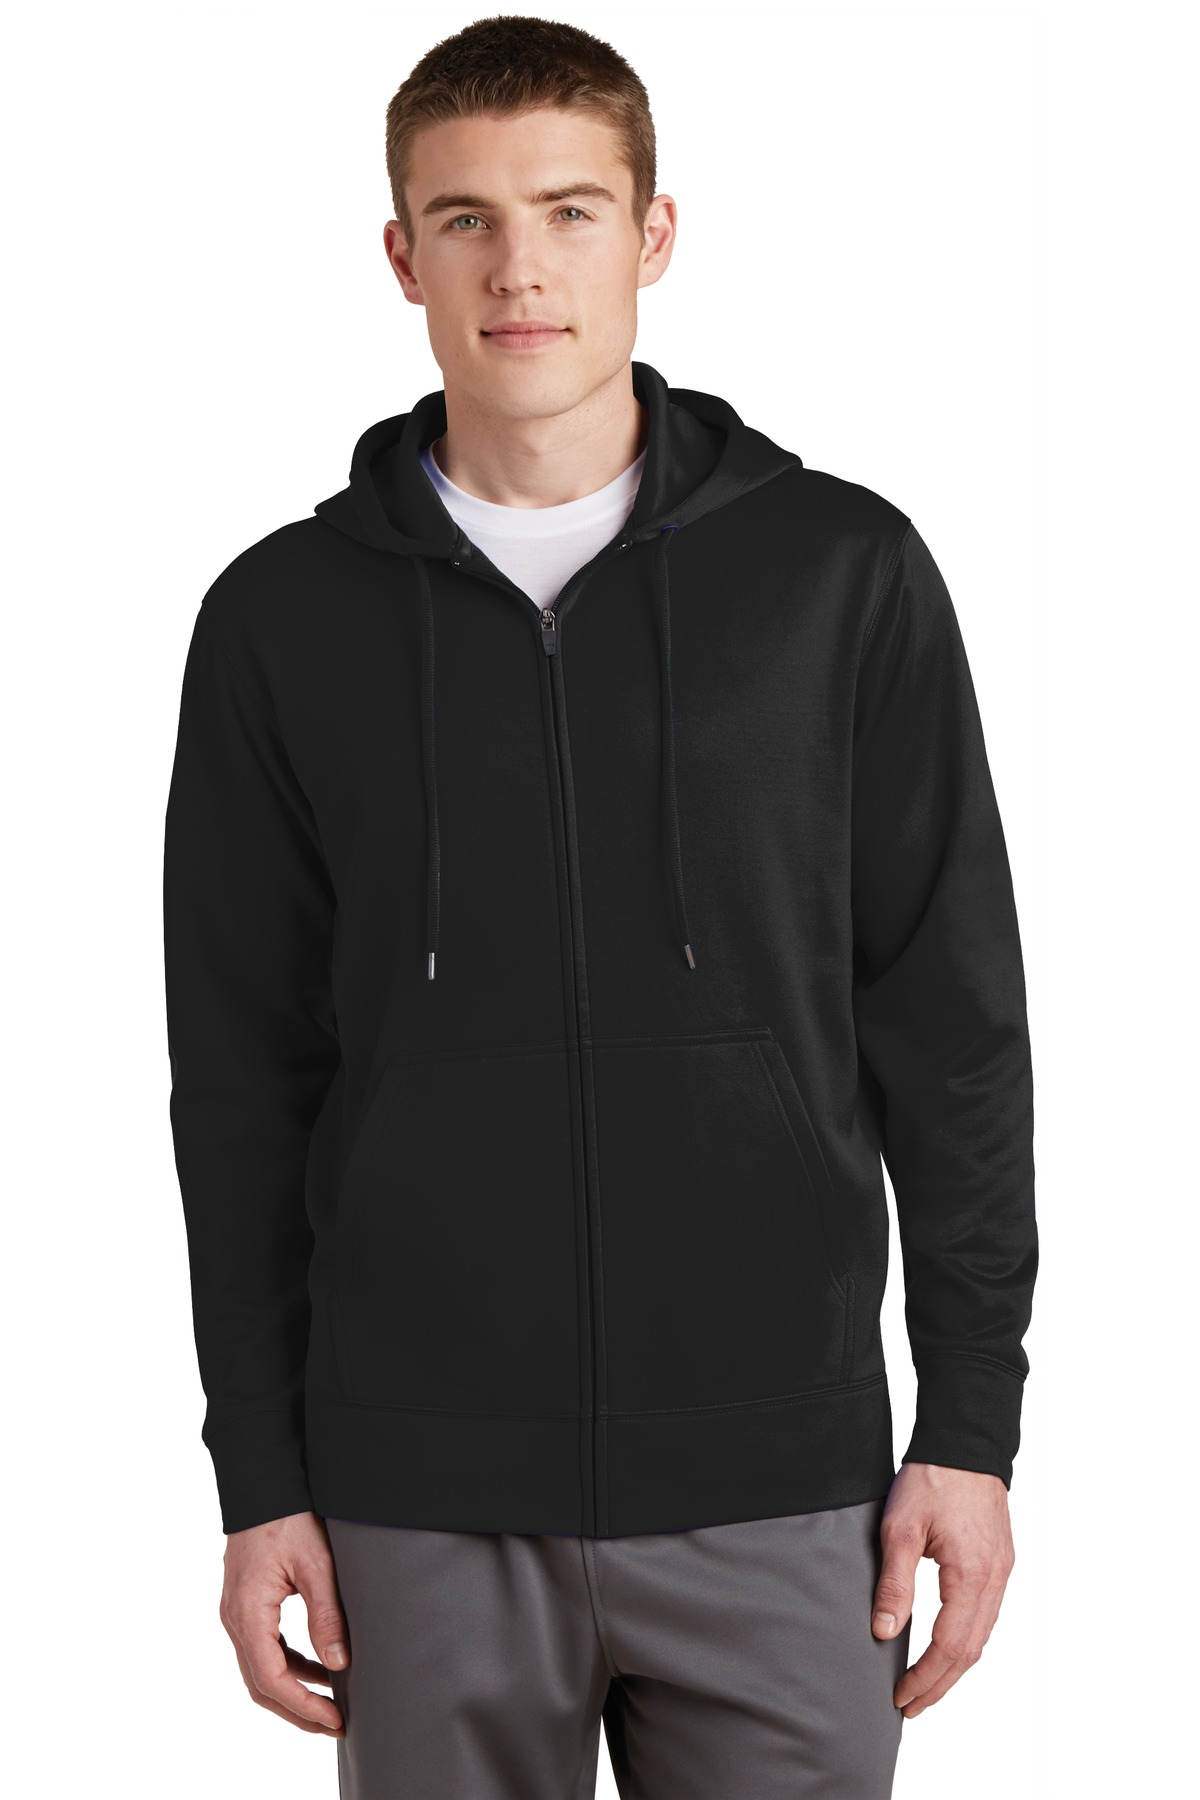 Sport-Tek ®  Sport-Wick ®  Fleece Full-Zip Hooded Jacket.  ST238 - Black